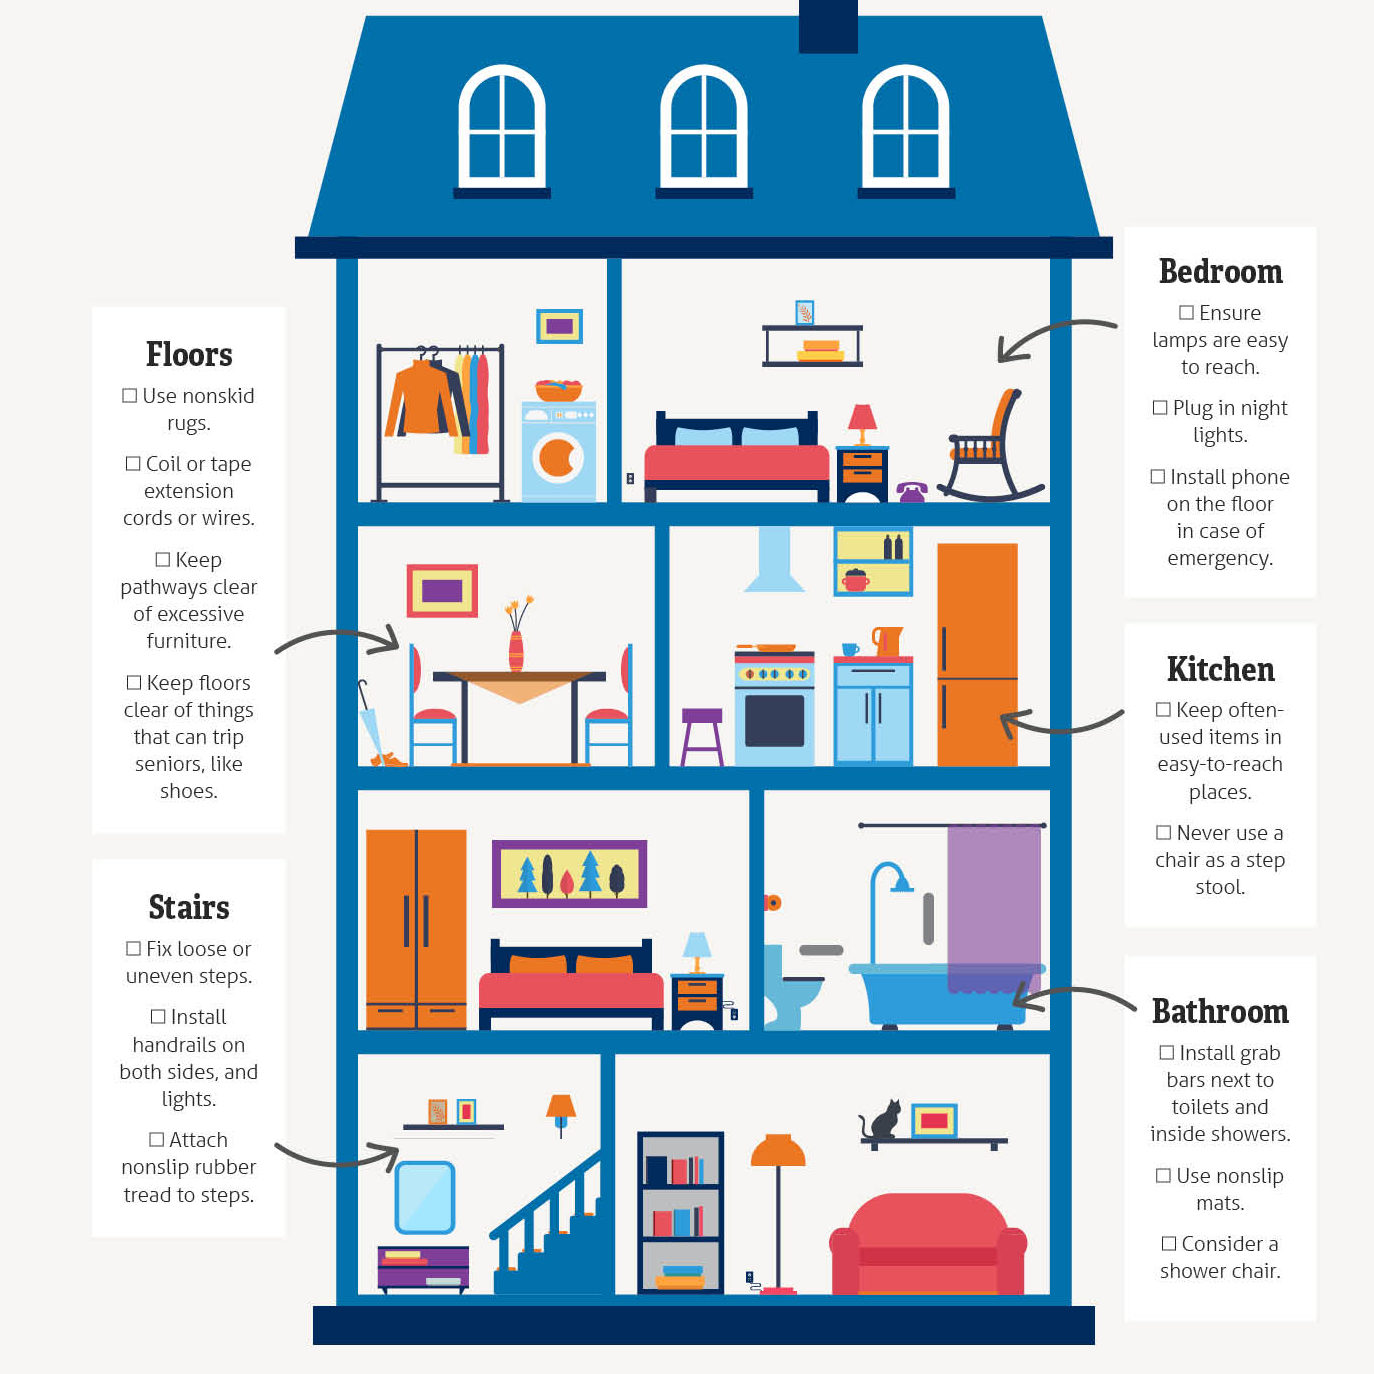 Infographic of a house with rooms highlighted with tips to prevent older adults from falling